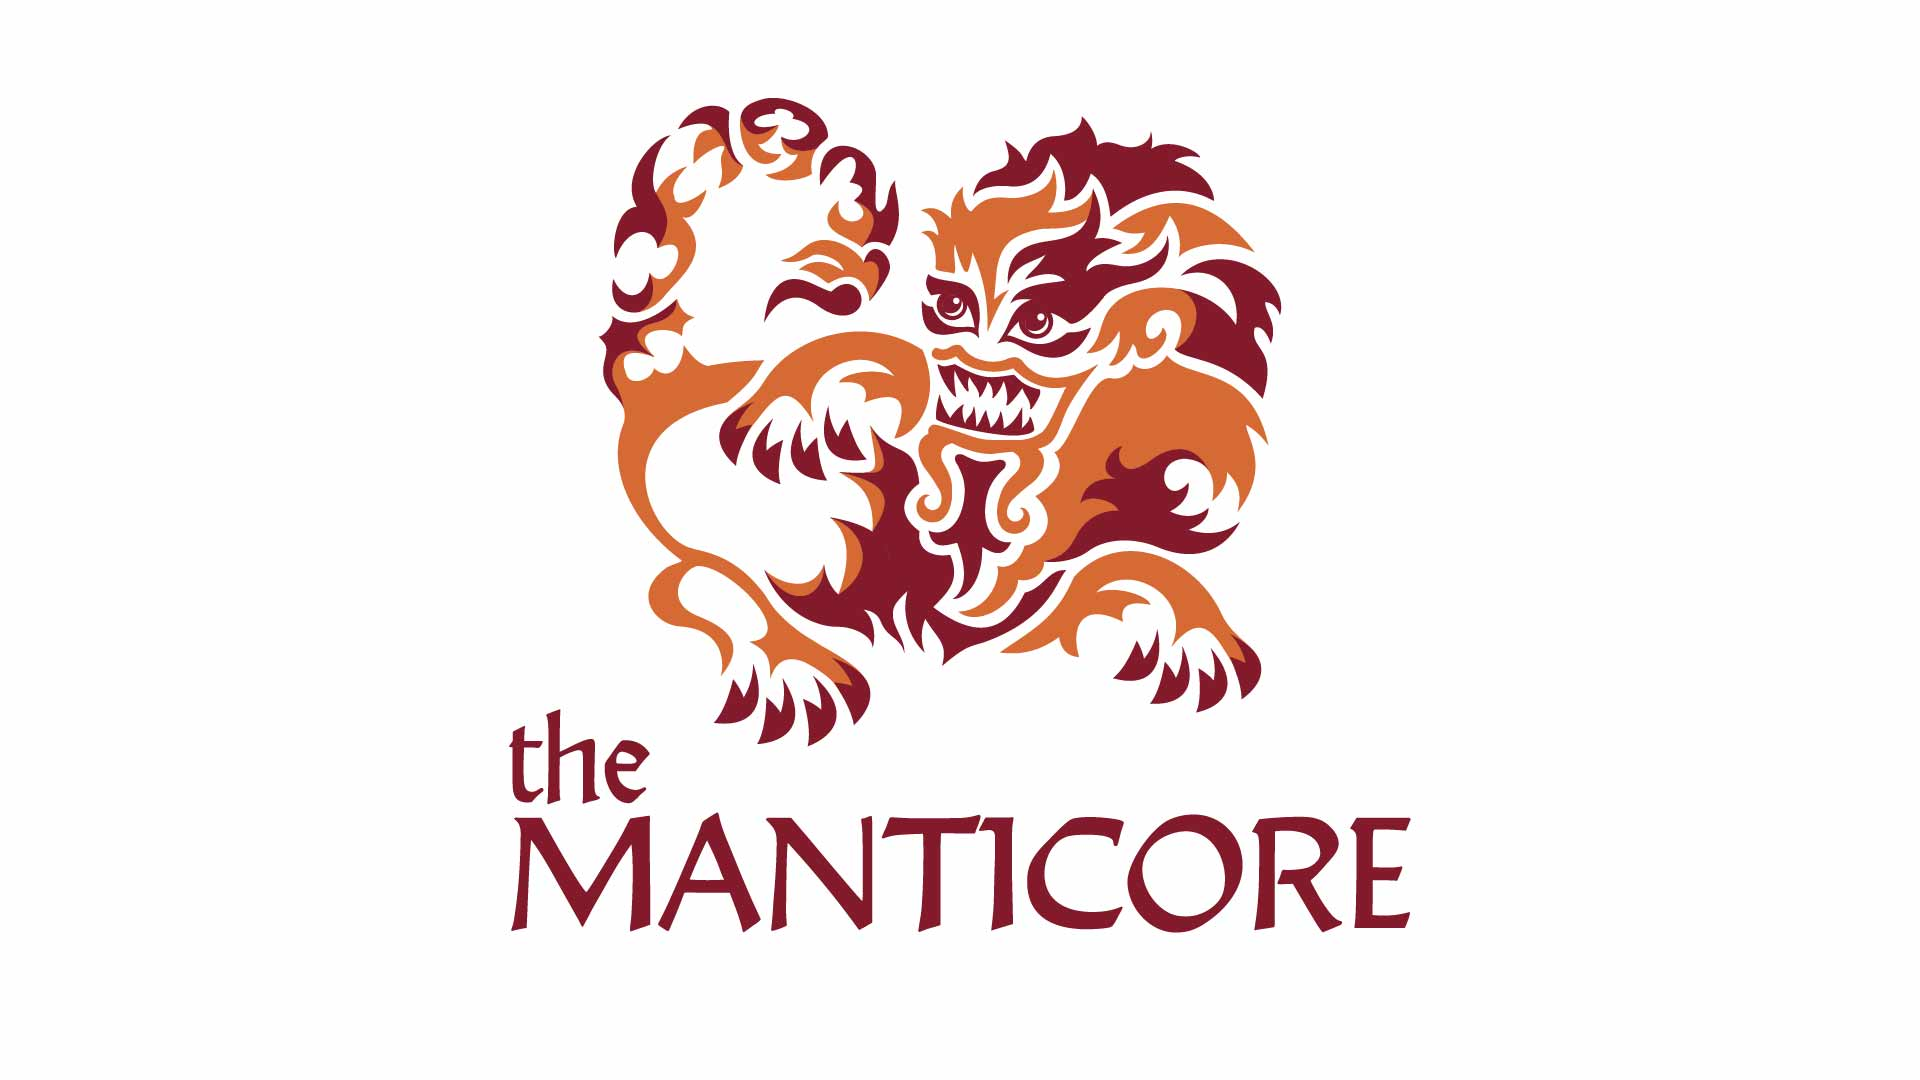 An image of created manticore symbol.